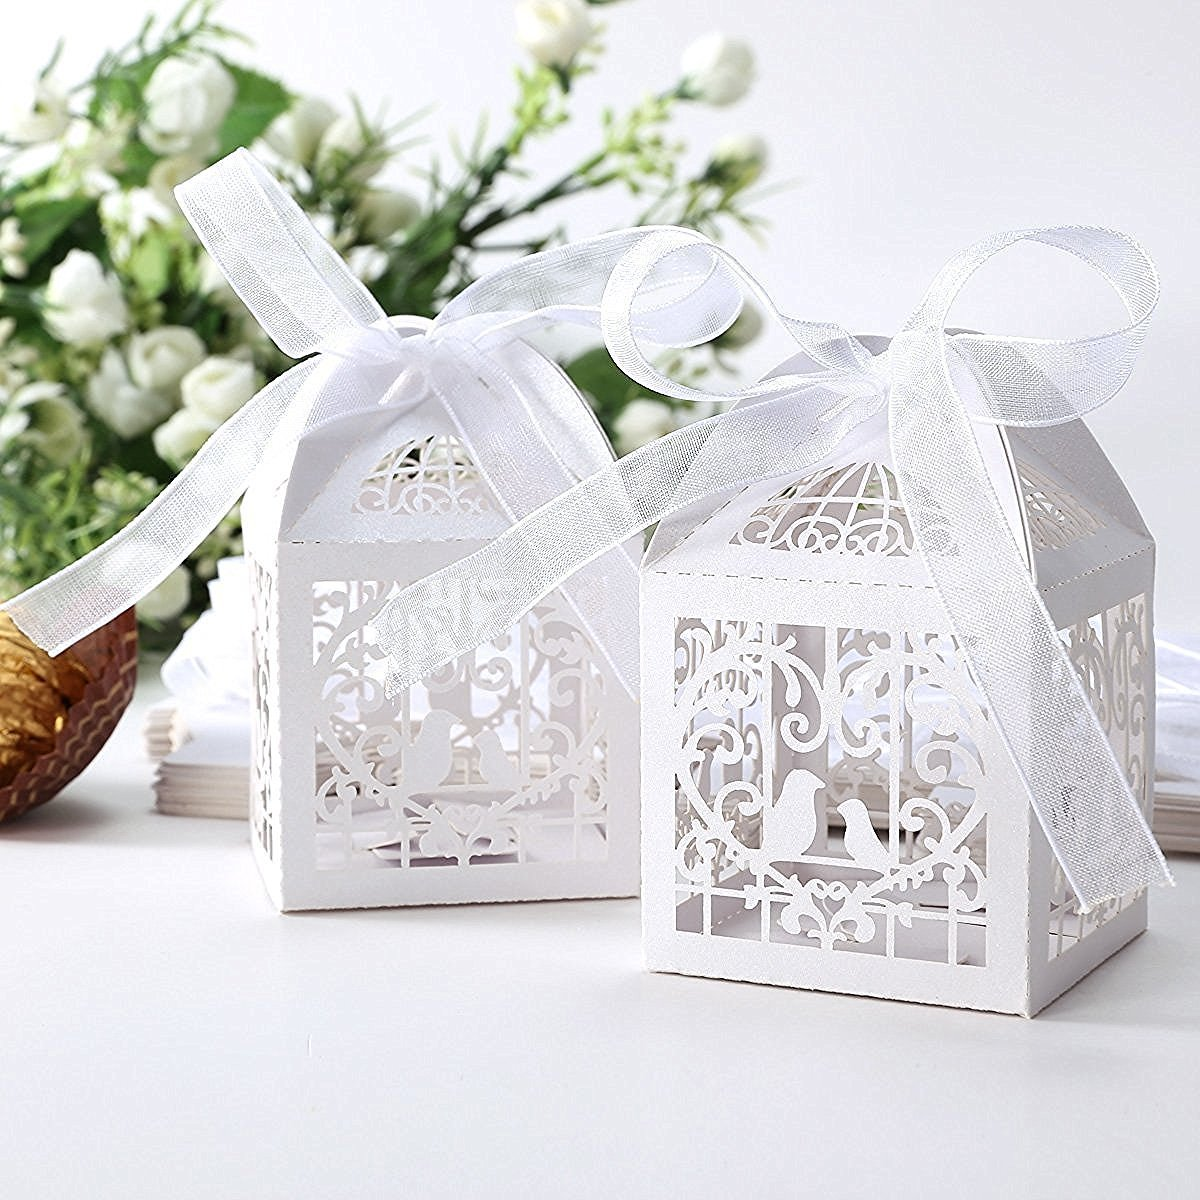 Cheap Cool Bird Boxes, find Cool Bird Boxes deals on line at Alibaba.com